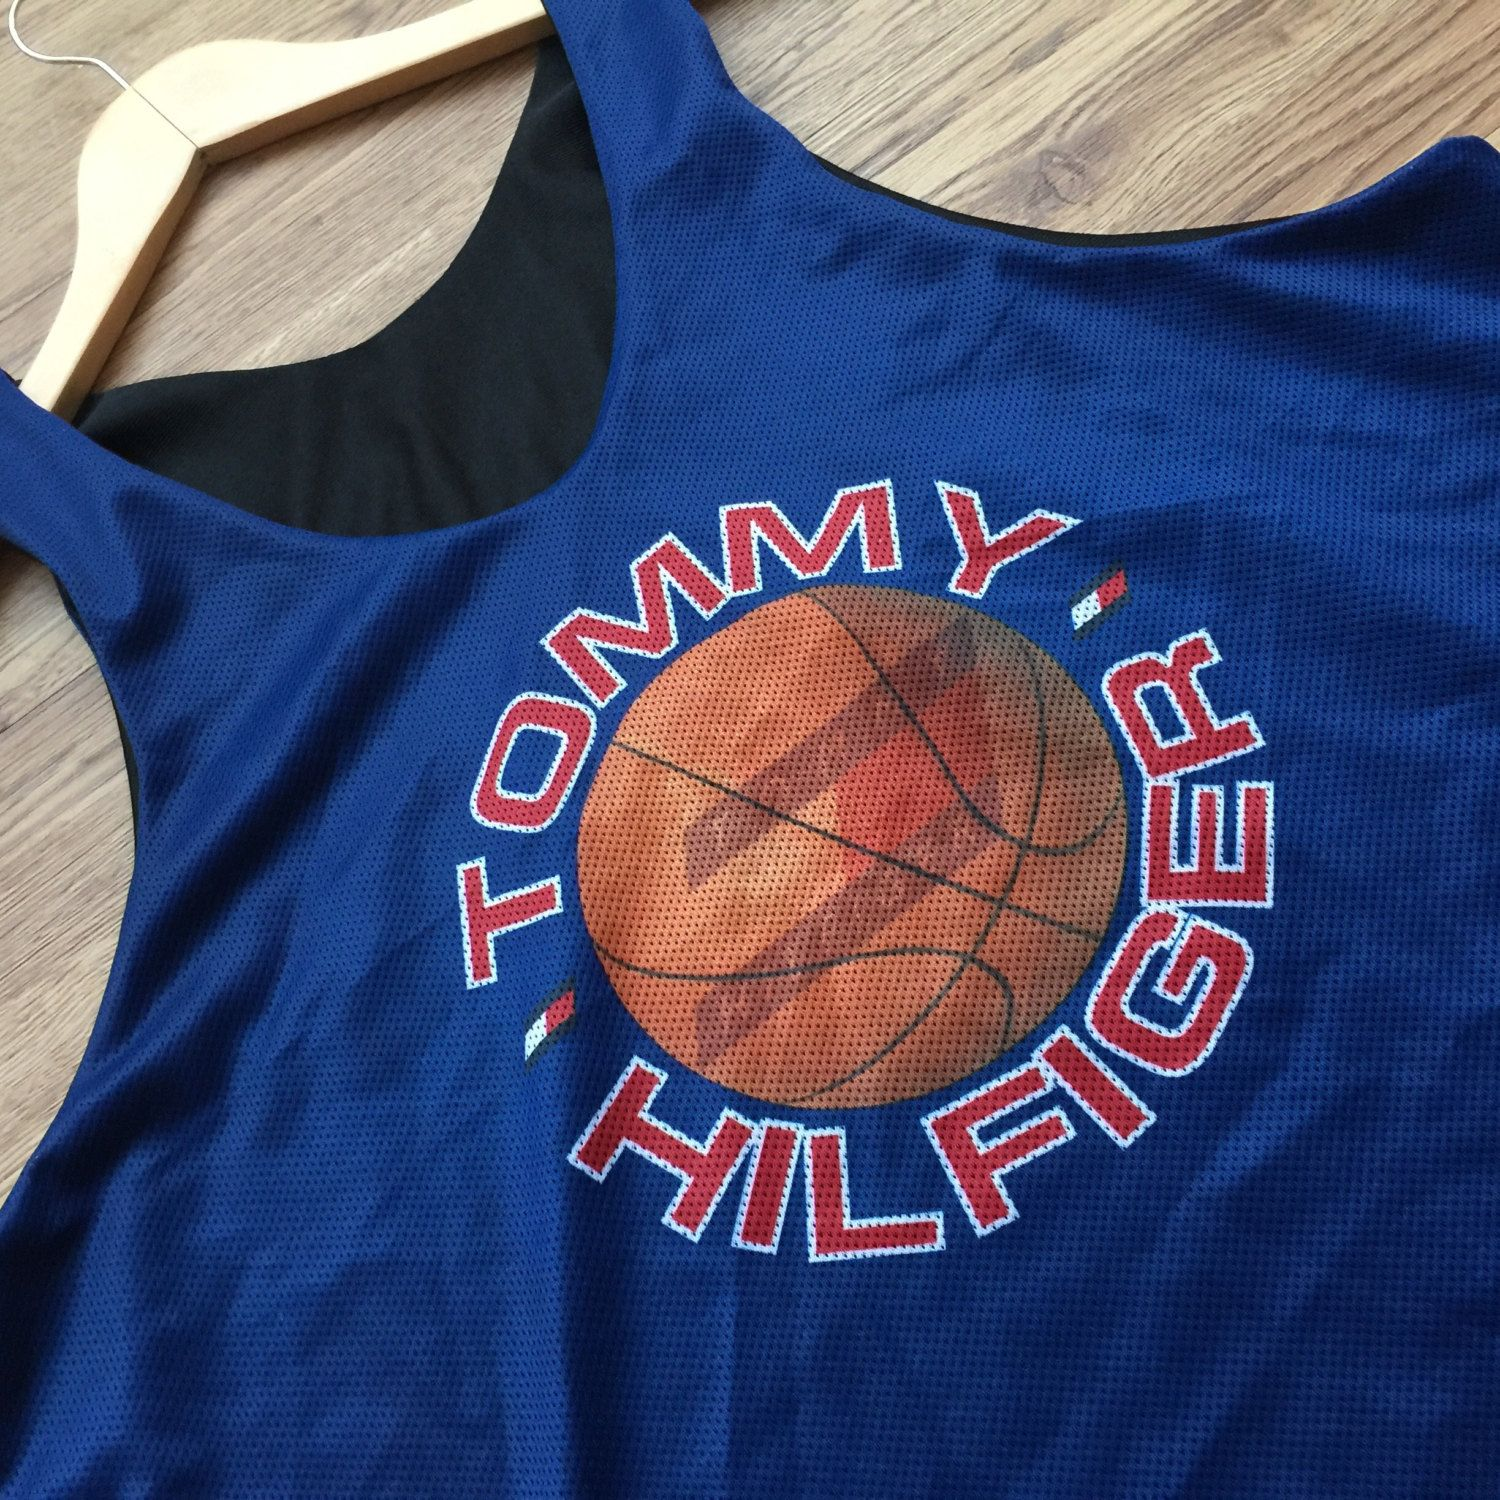 Rare Vintage Tommy Hilfiger Reversible Basketball Jersey by VNTGvault on  Etsy fafe4cae3